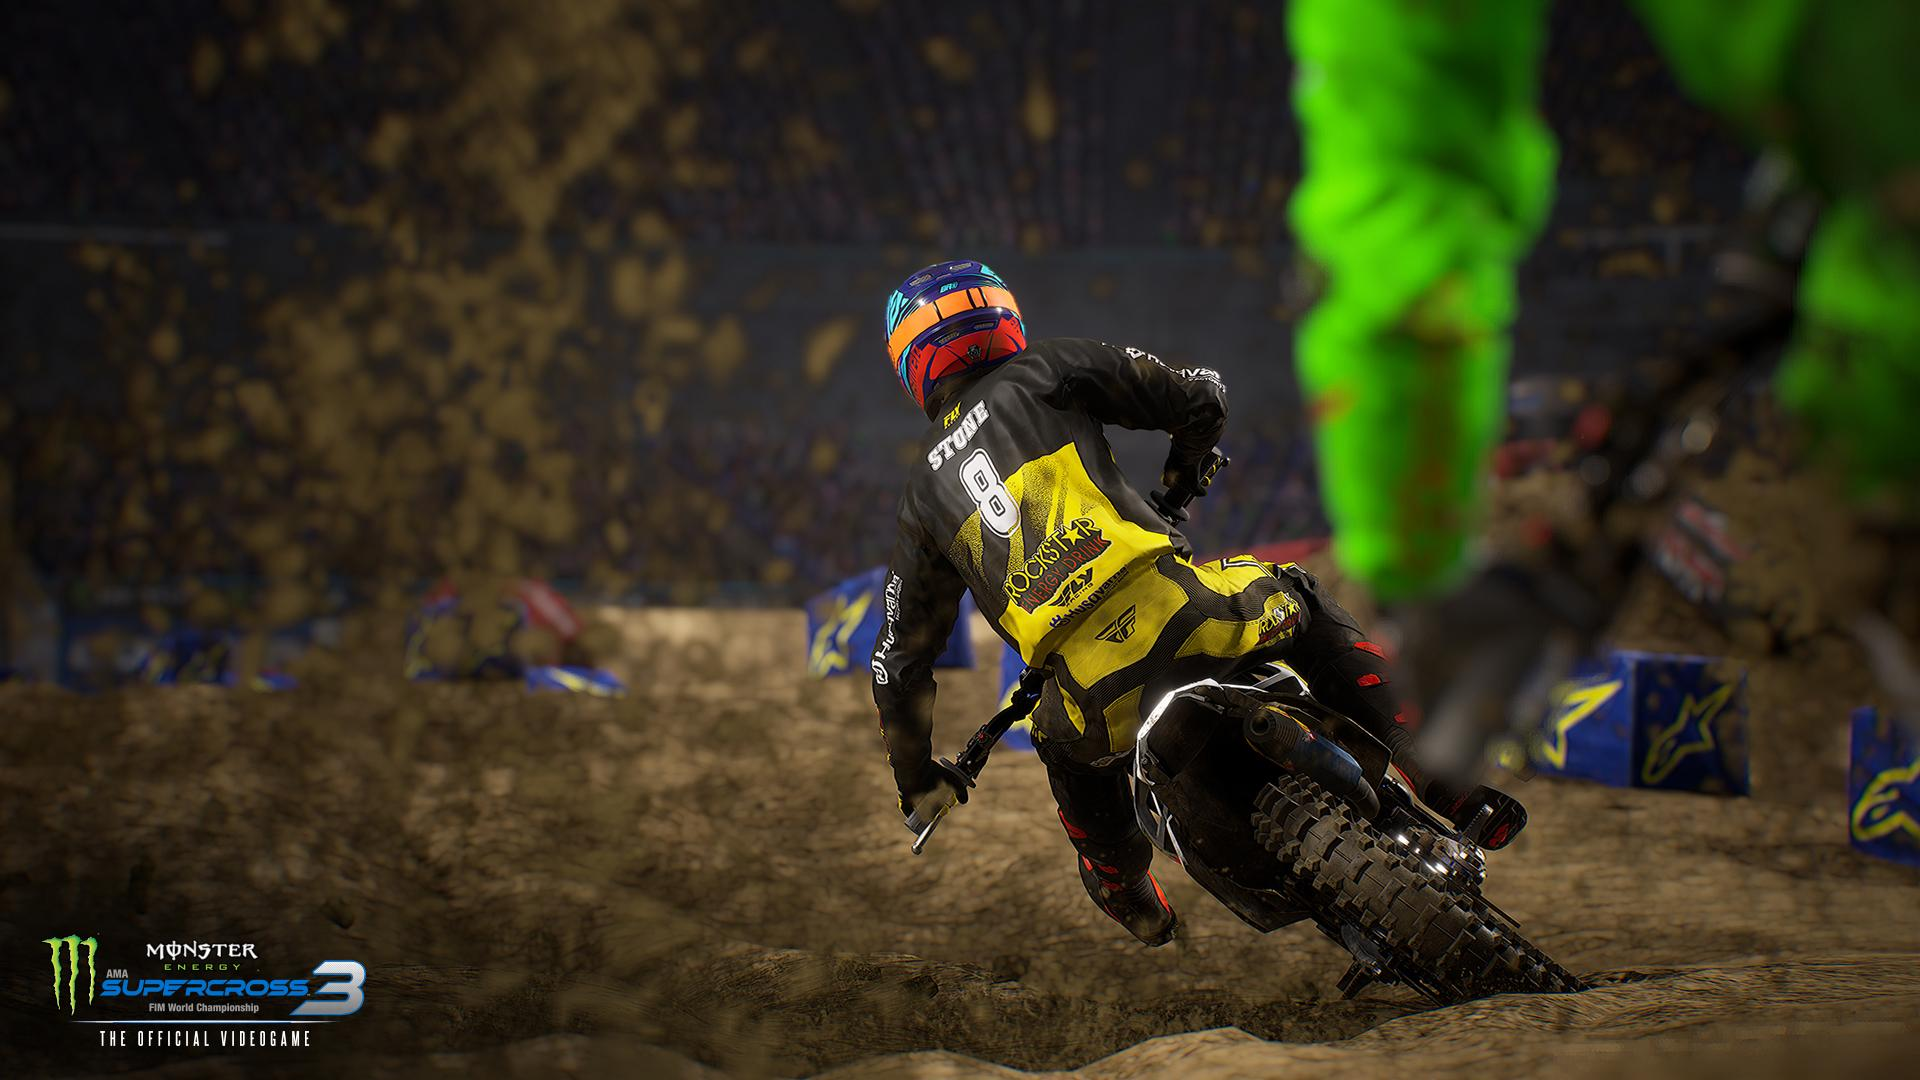 Annunciato Monster Energy Supercross – The Official Videogame 3